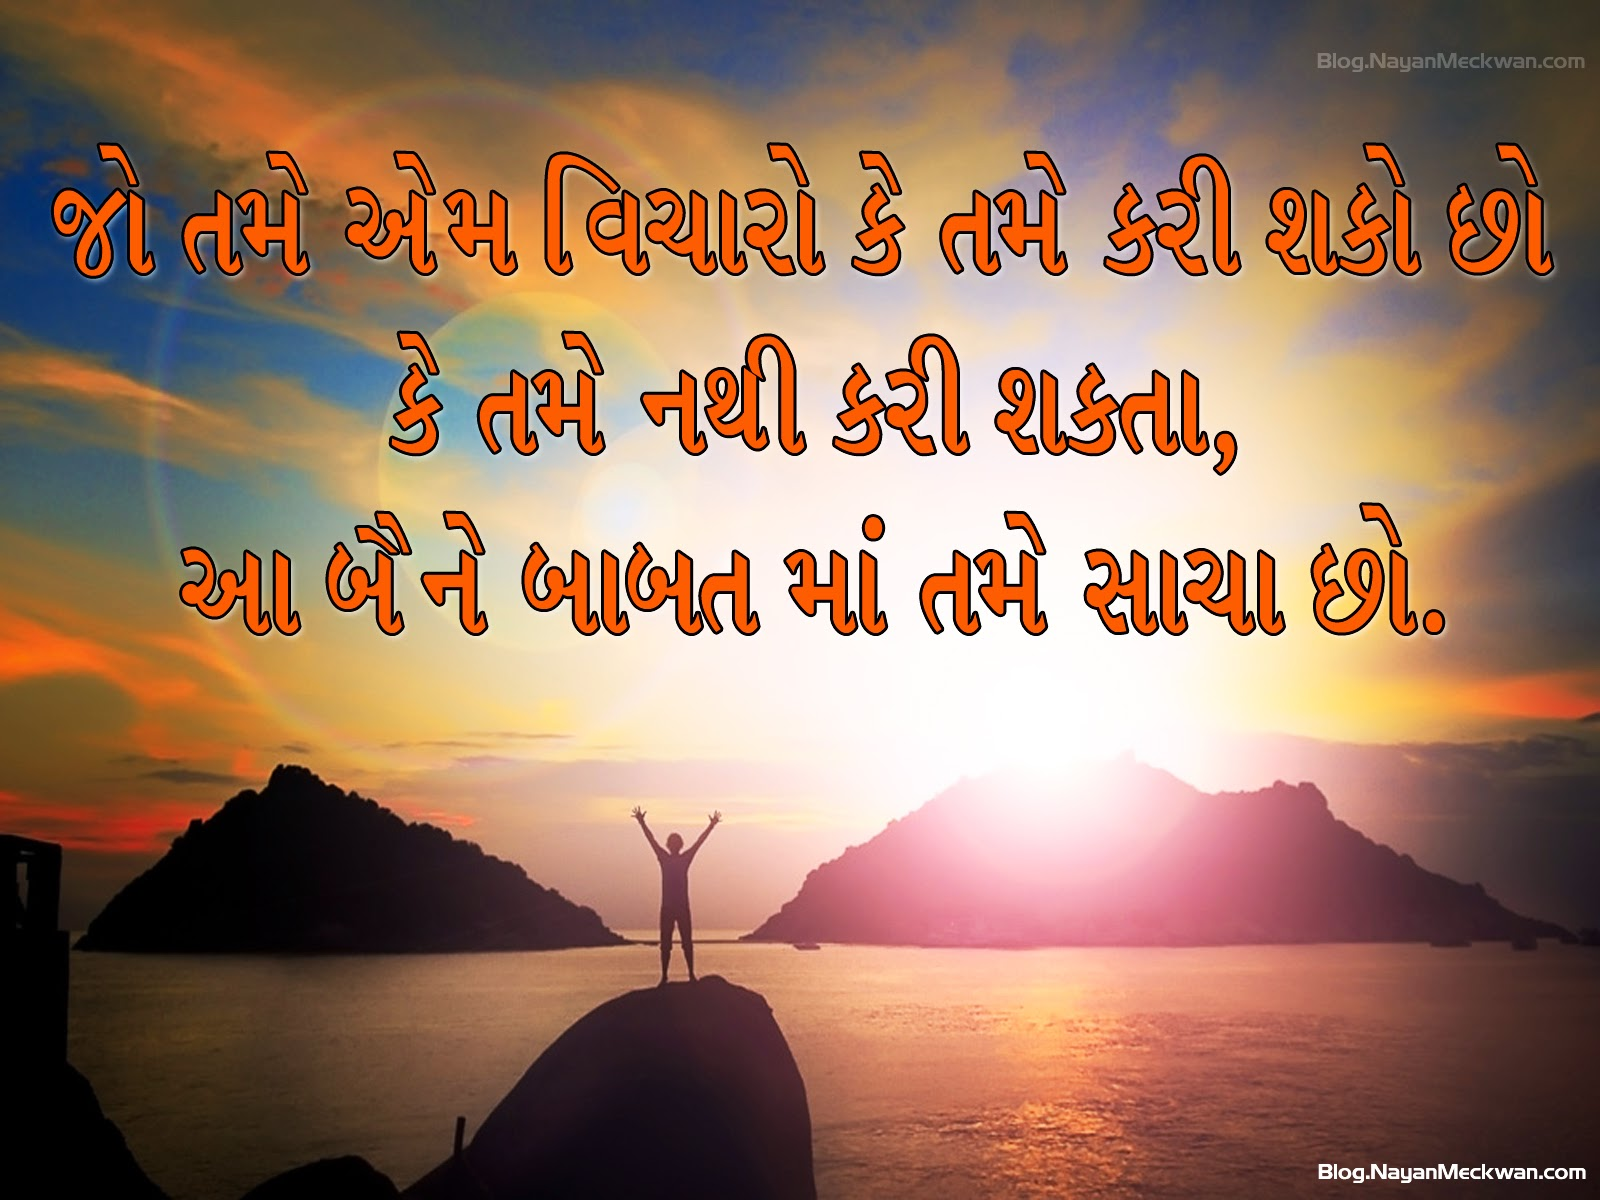 Jo tame am Vicharo chho Best Gujarati Suvichar | Quote | The Secret quote in Gujarati